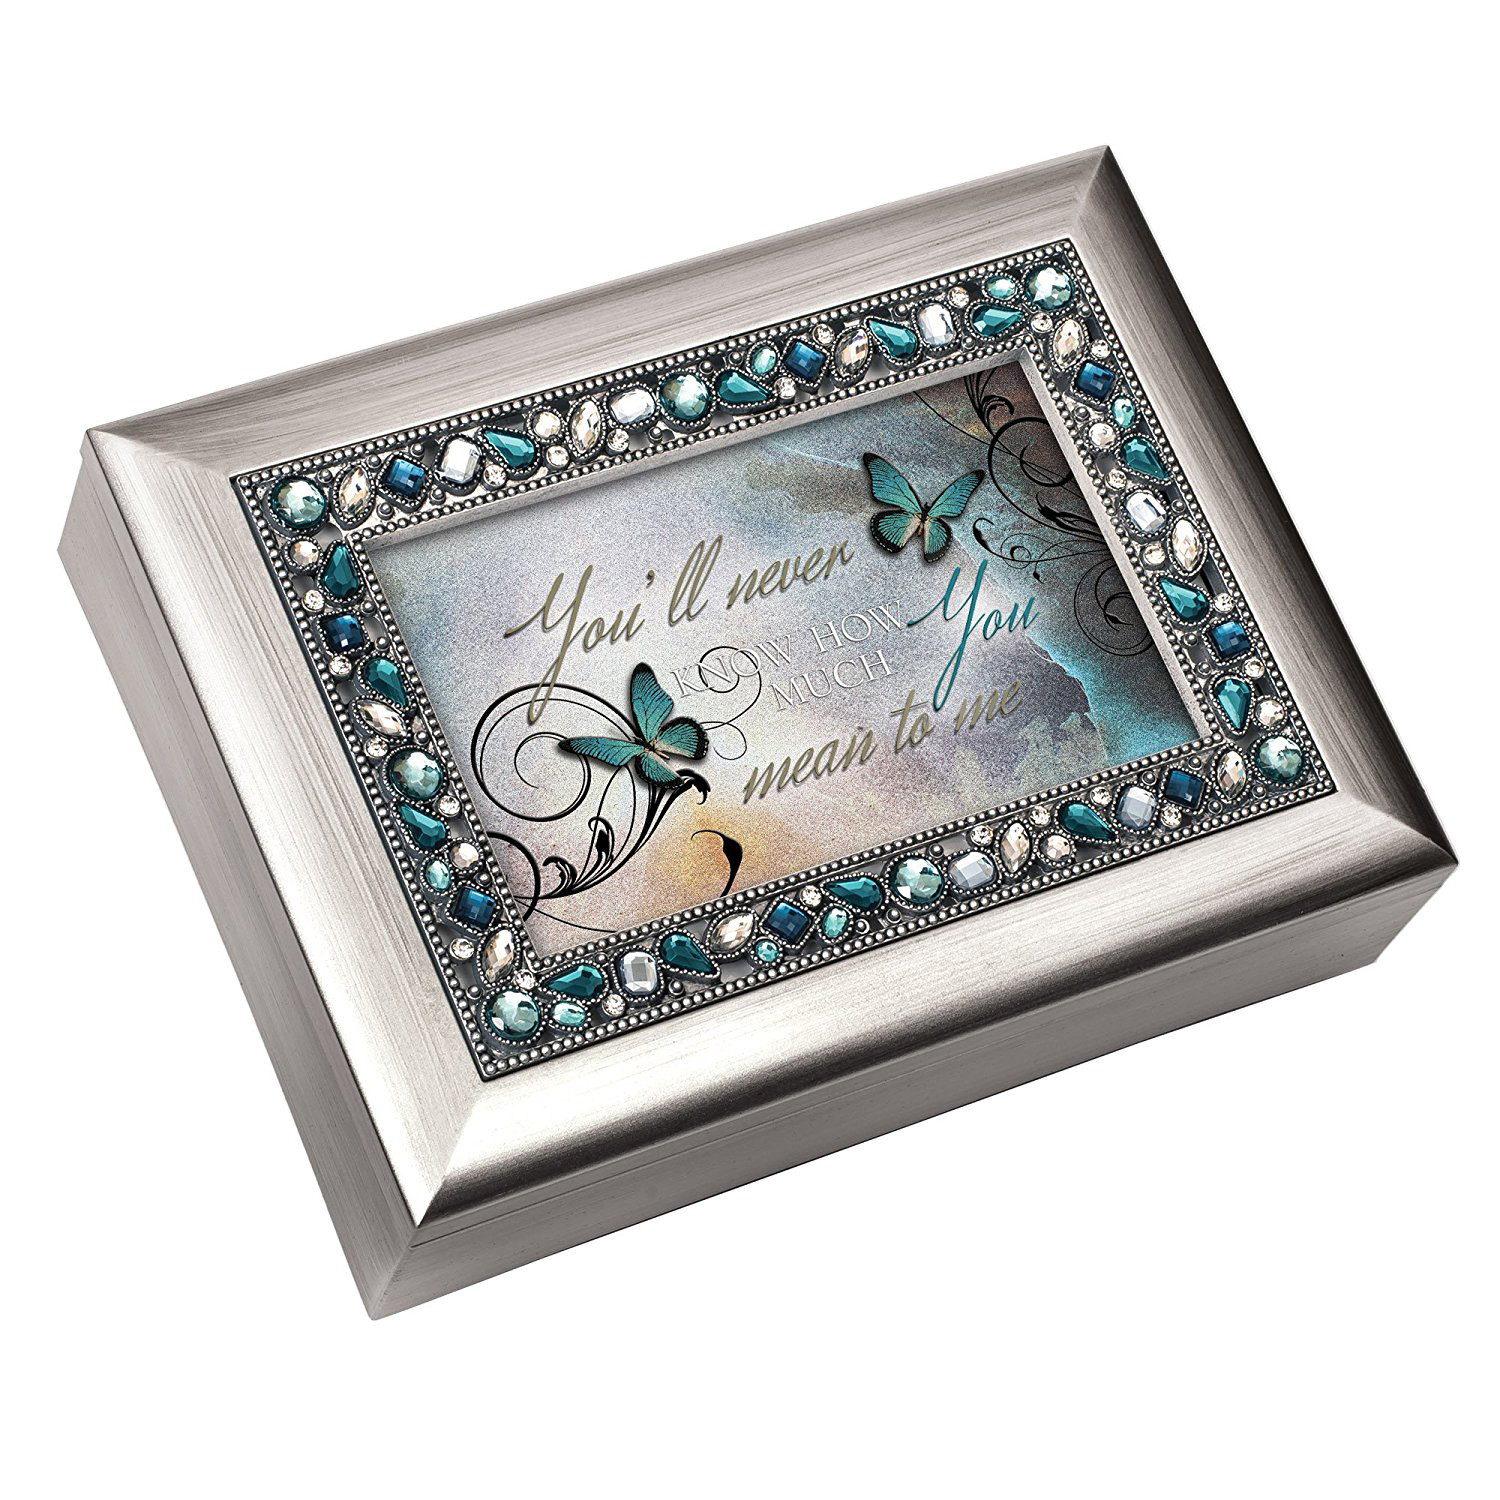 Beautiful Silver Photo Frame Decorative Jewelry Box